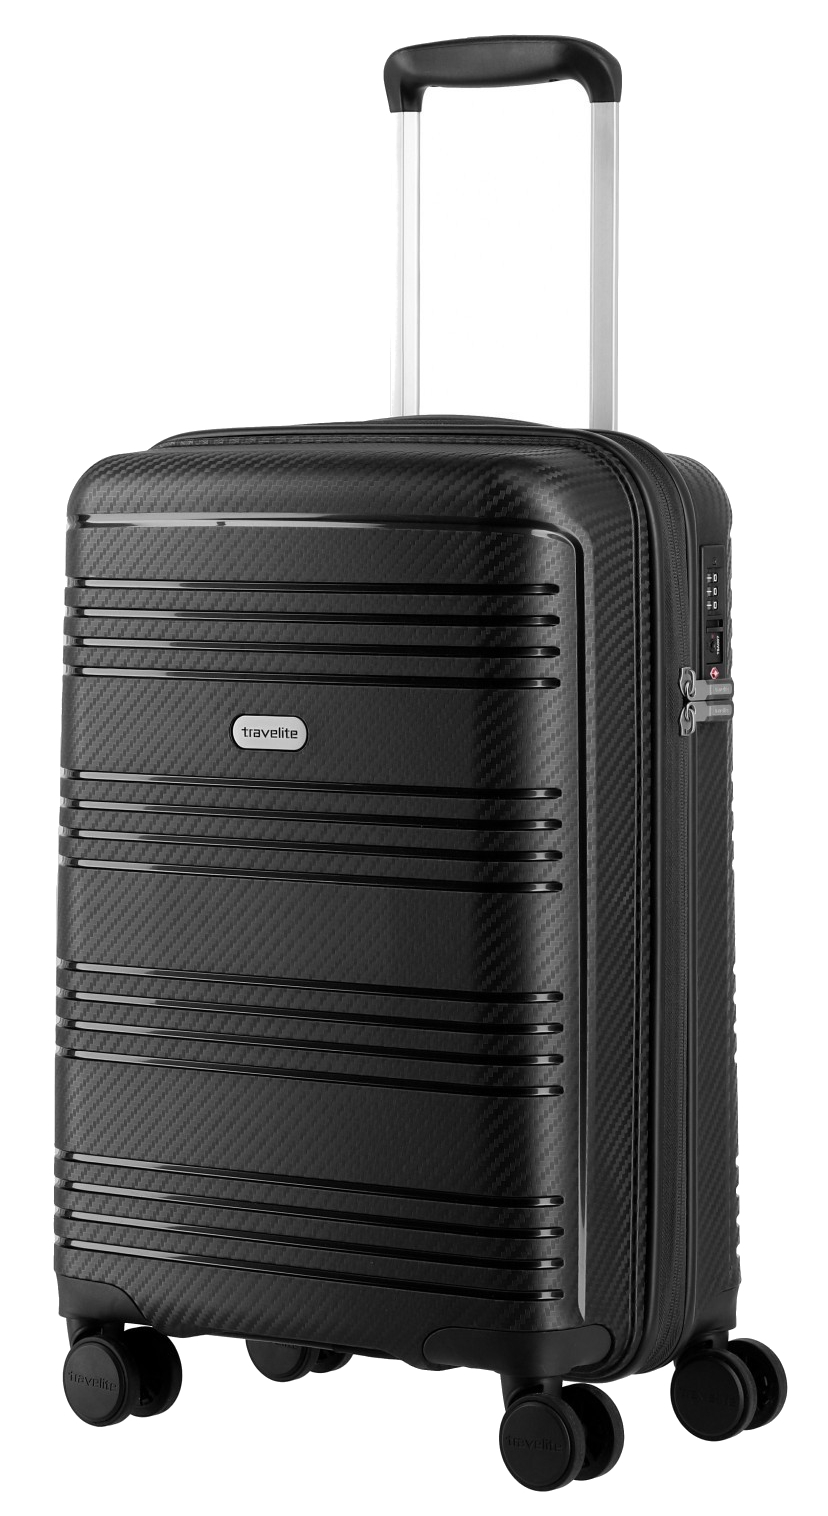 Travelite 'Zenit' 4-Rad Bordtrolley 55cm 2,5kg 36l schwarz